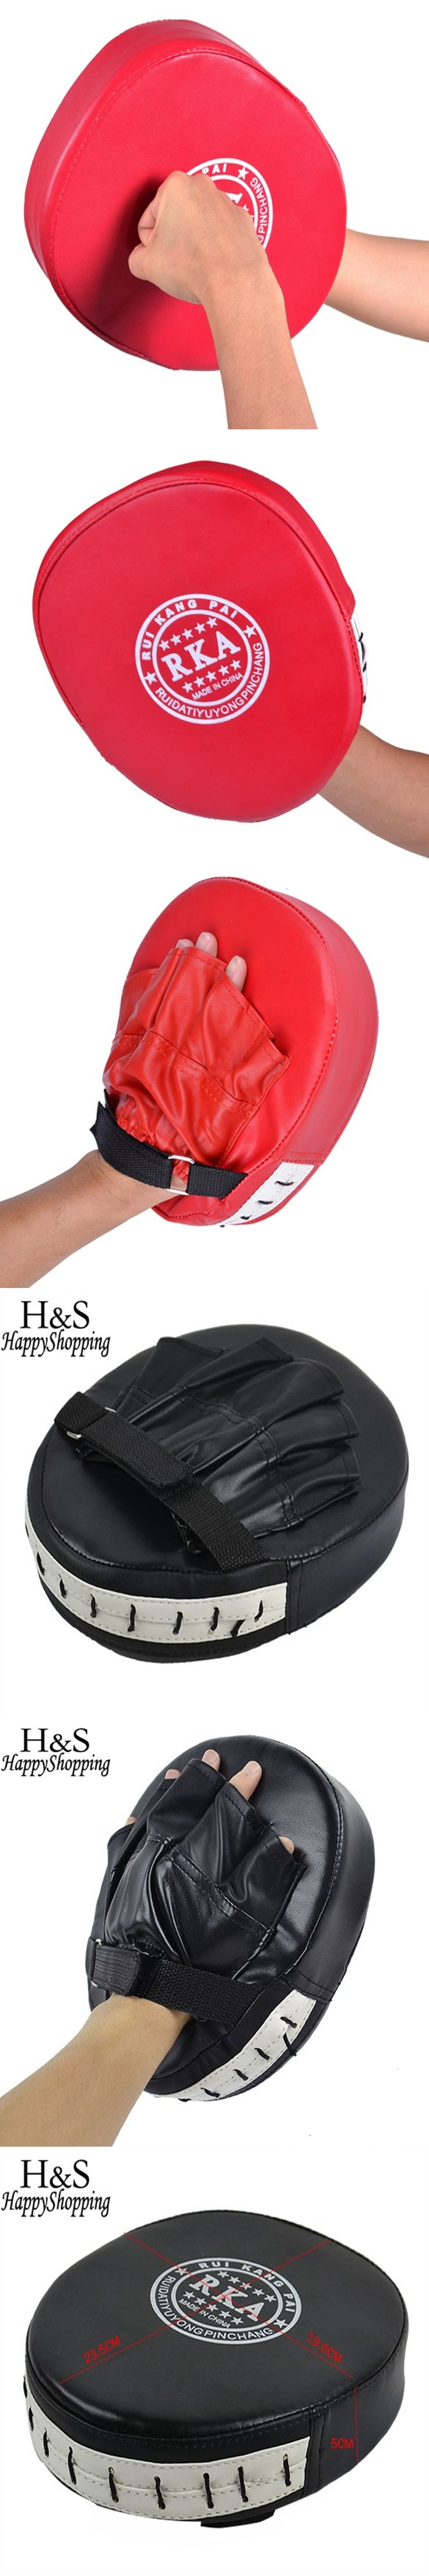 High Quality 1 Piece Black/Red Boxing Mitt MMA Target Hook Jab Focus Punch Pad Safety MMA Training Gloves Karate Luva De Foco